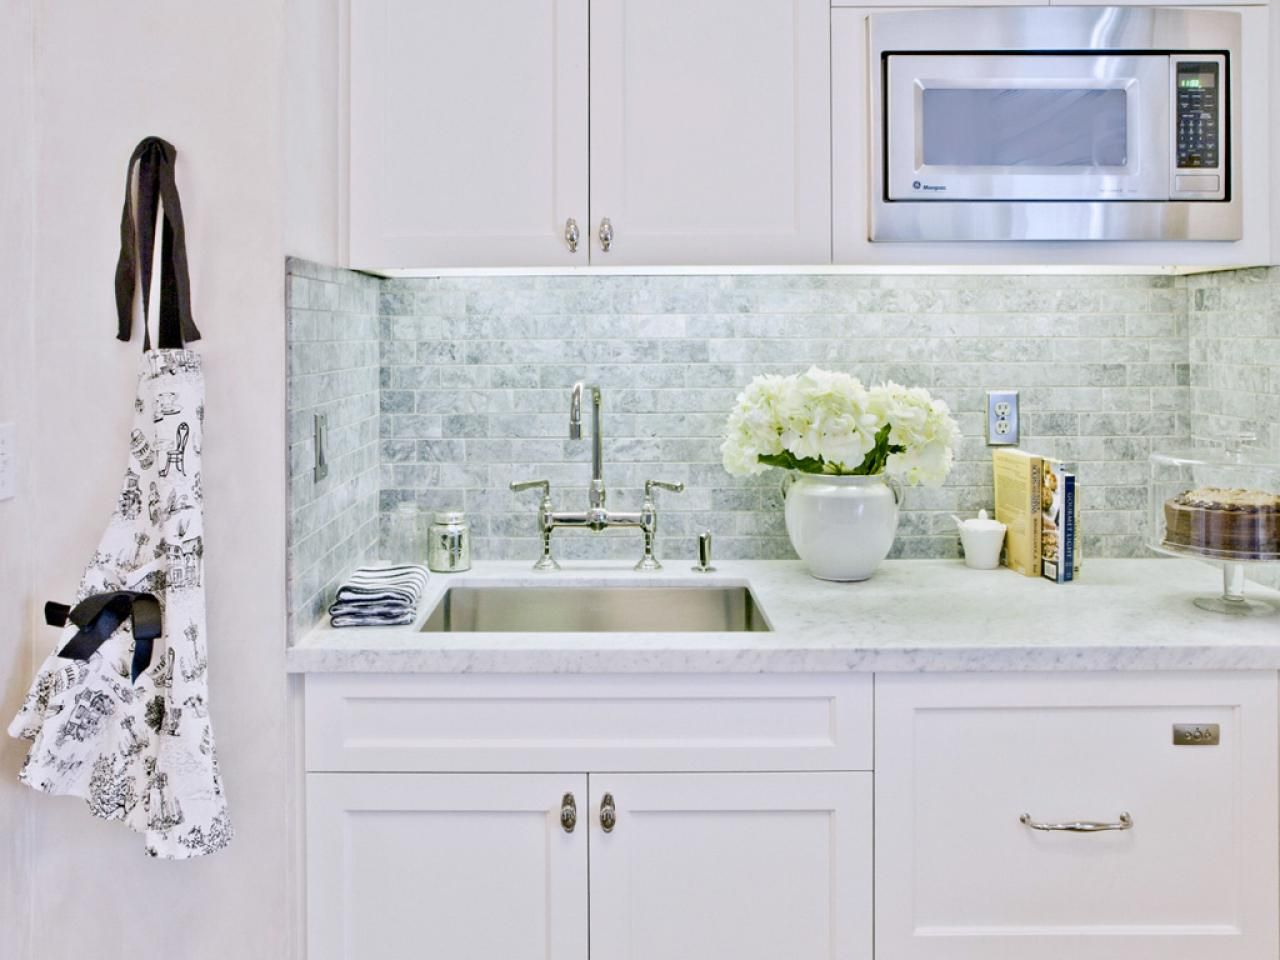 kitchen-backsplash-subway-tile_4x3.jpg.rend.hgtvcom.1280.960.jpeg (1280×960)